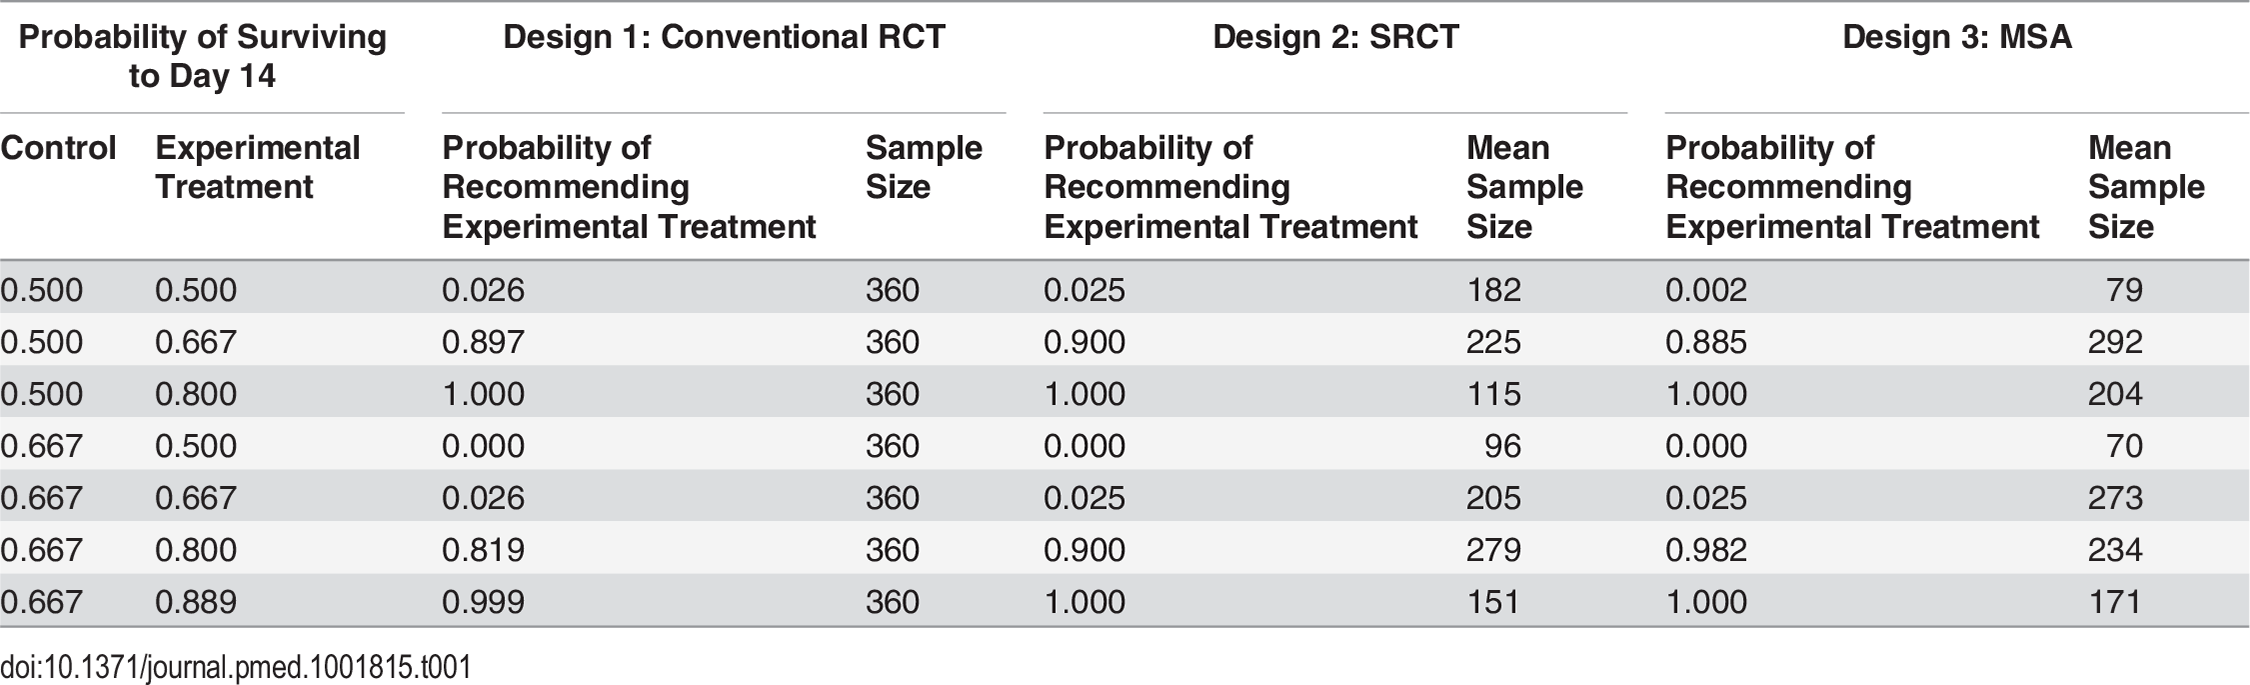 Probabilities of recommending treatment and mean sample size for the three different study designs for various combinations of survival rates.